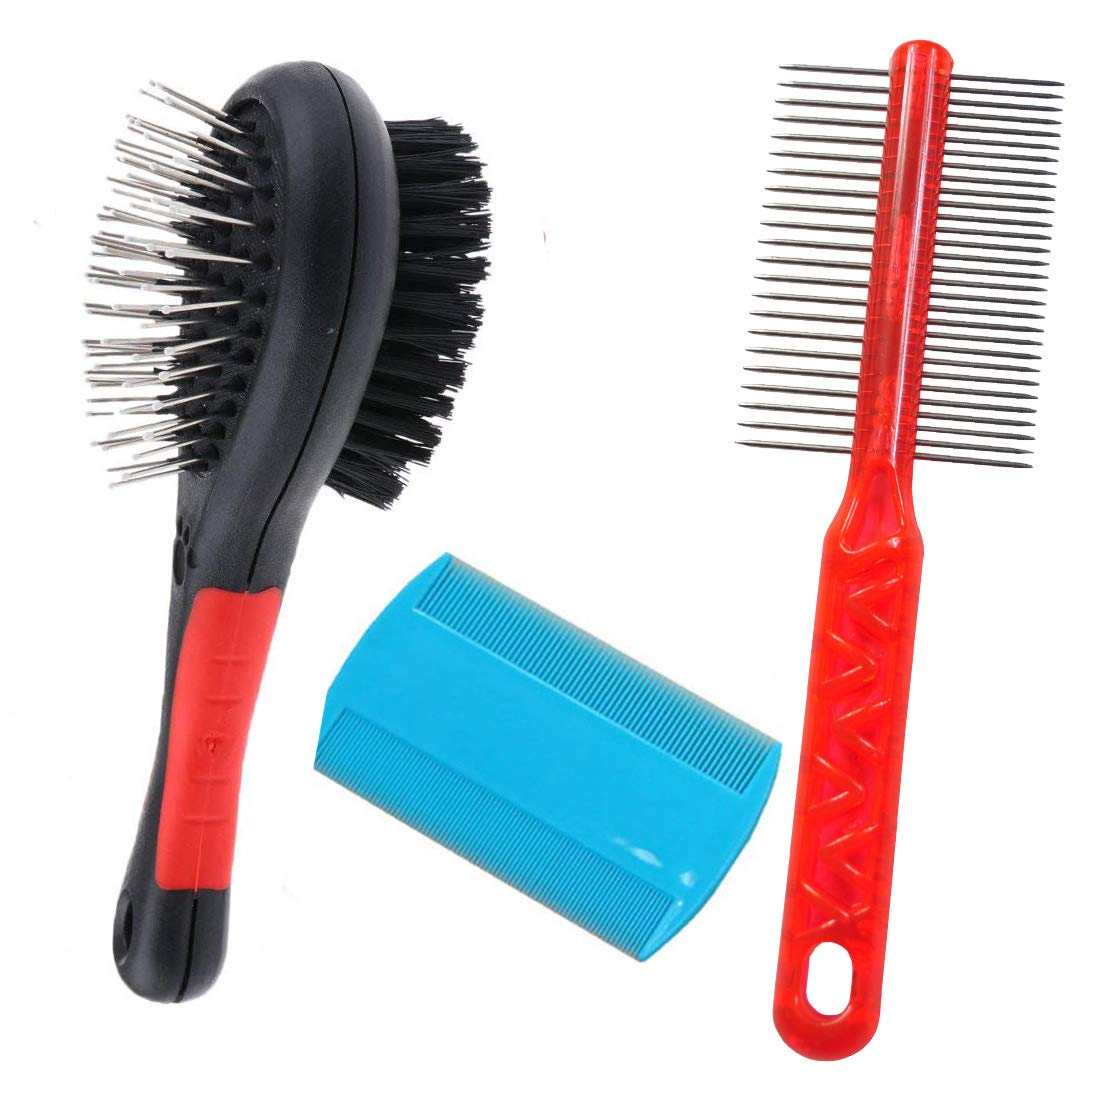 Dog Brush, Professional Double Sided Pin & Bristle Bamboo Brush for Dogs & Cats, Grooming Comb Cleans Pets Shedding & Dirt for Short Medium or Long Hai (3Pcs)